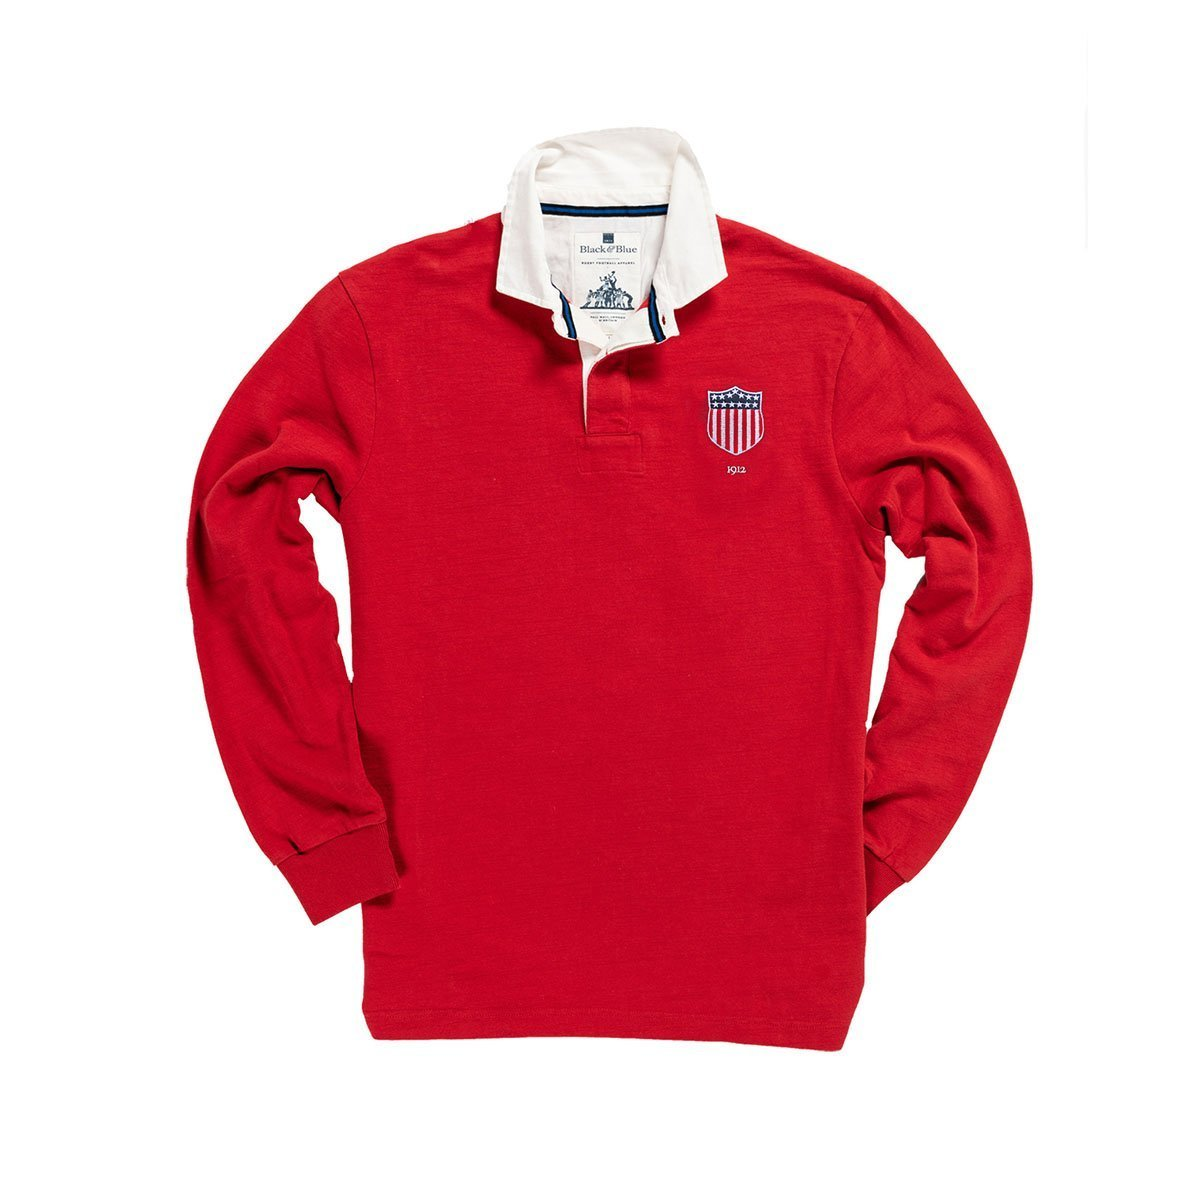 1IN/USRXS, Black & Blue 1871, USA 1912 Limited Edition Rugby Shirt, Red, Vintage, Classic Rugby Shirt